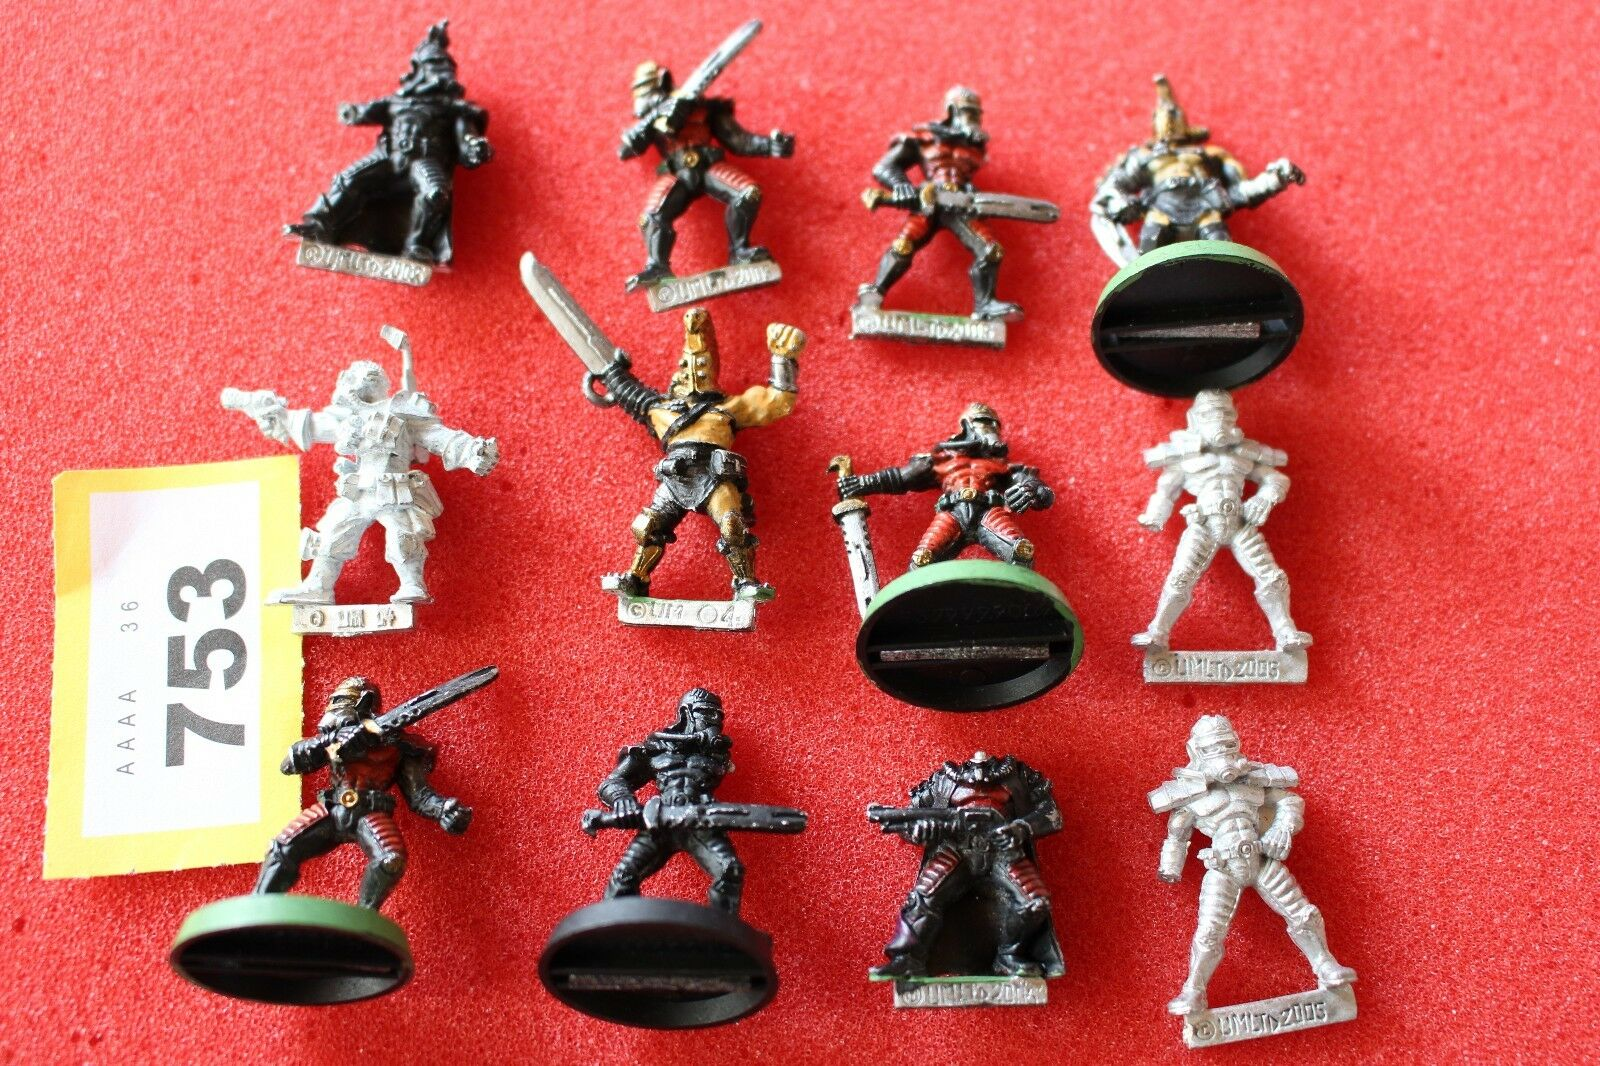 Umltd 2005 Metal Miniatures Job Lot 25mm Army Necromunda Warhammer Spares Lot